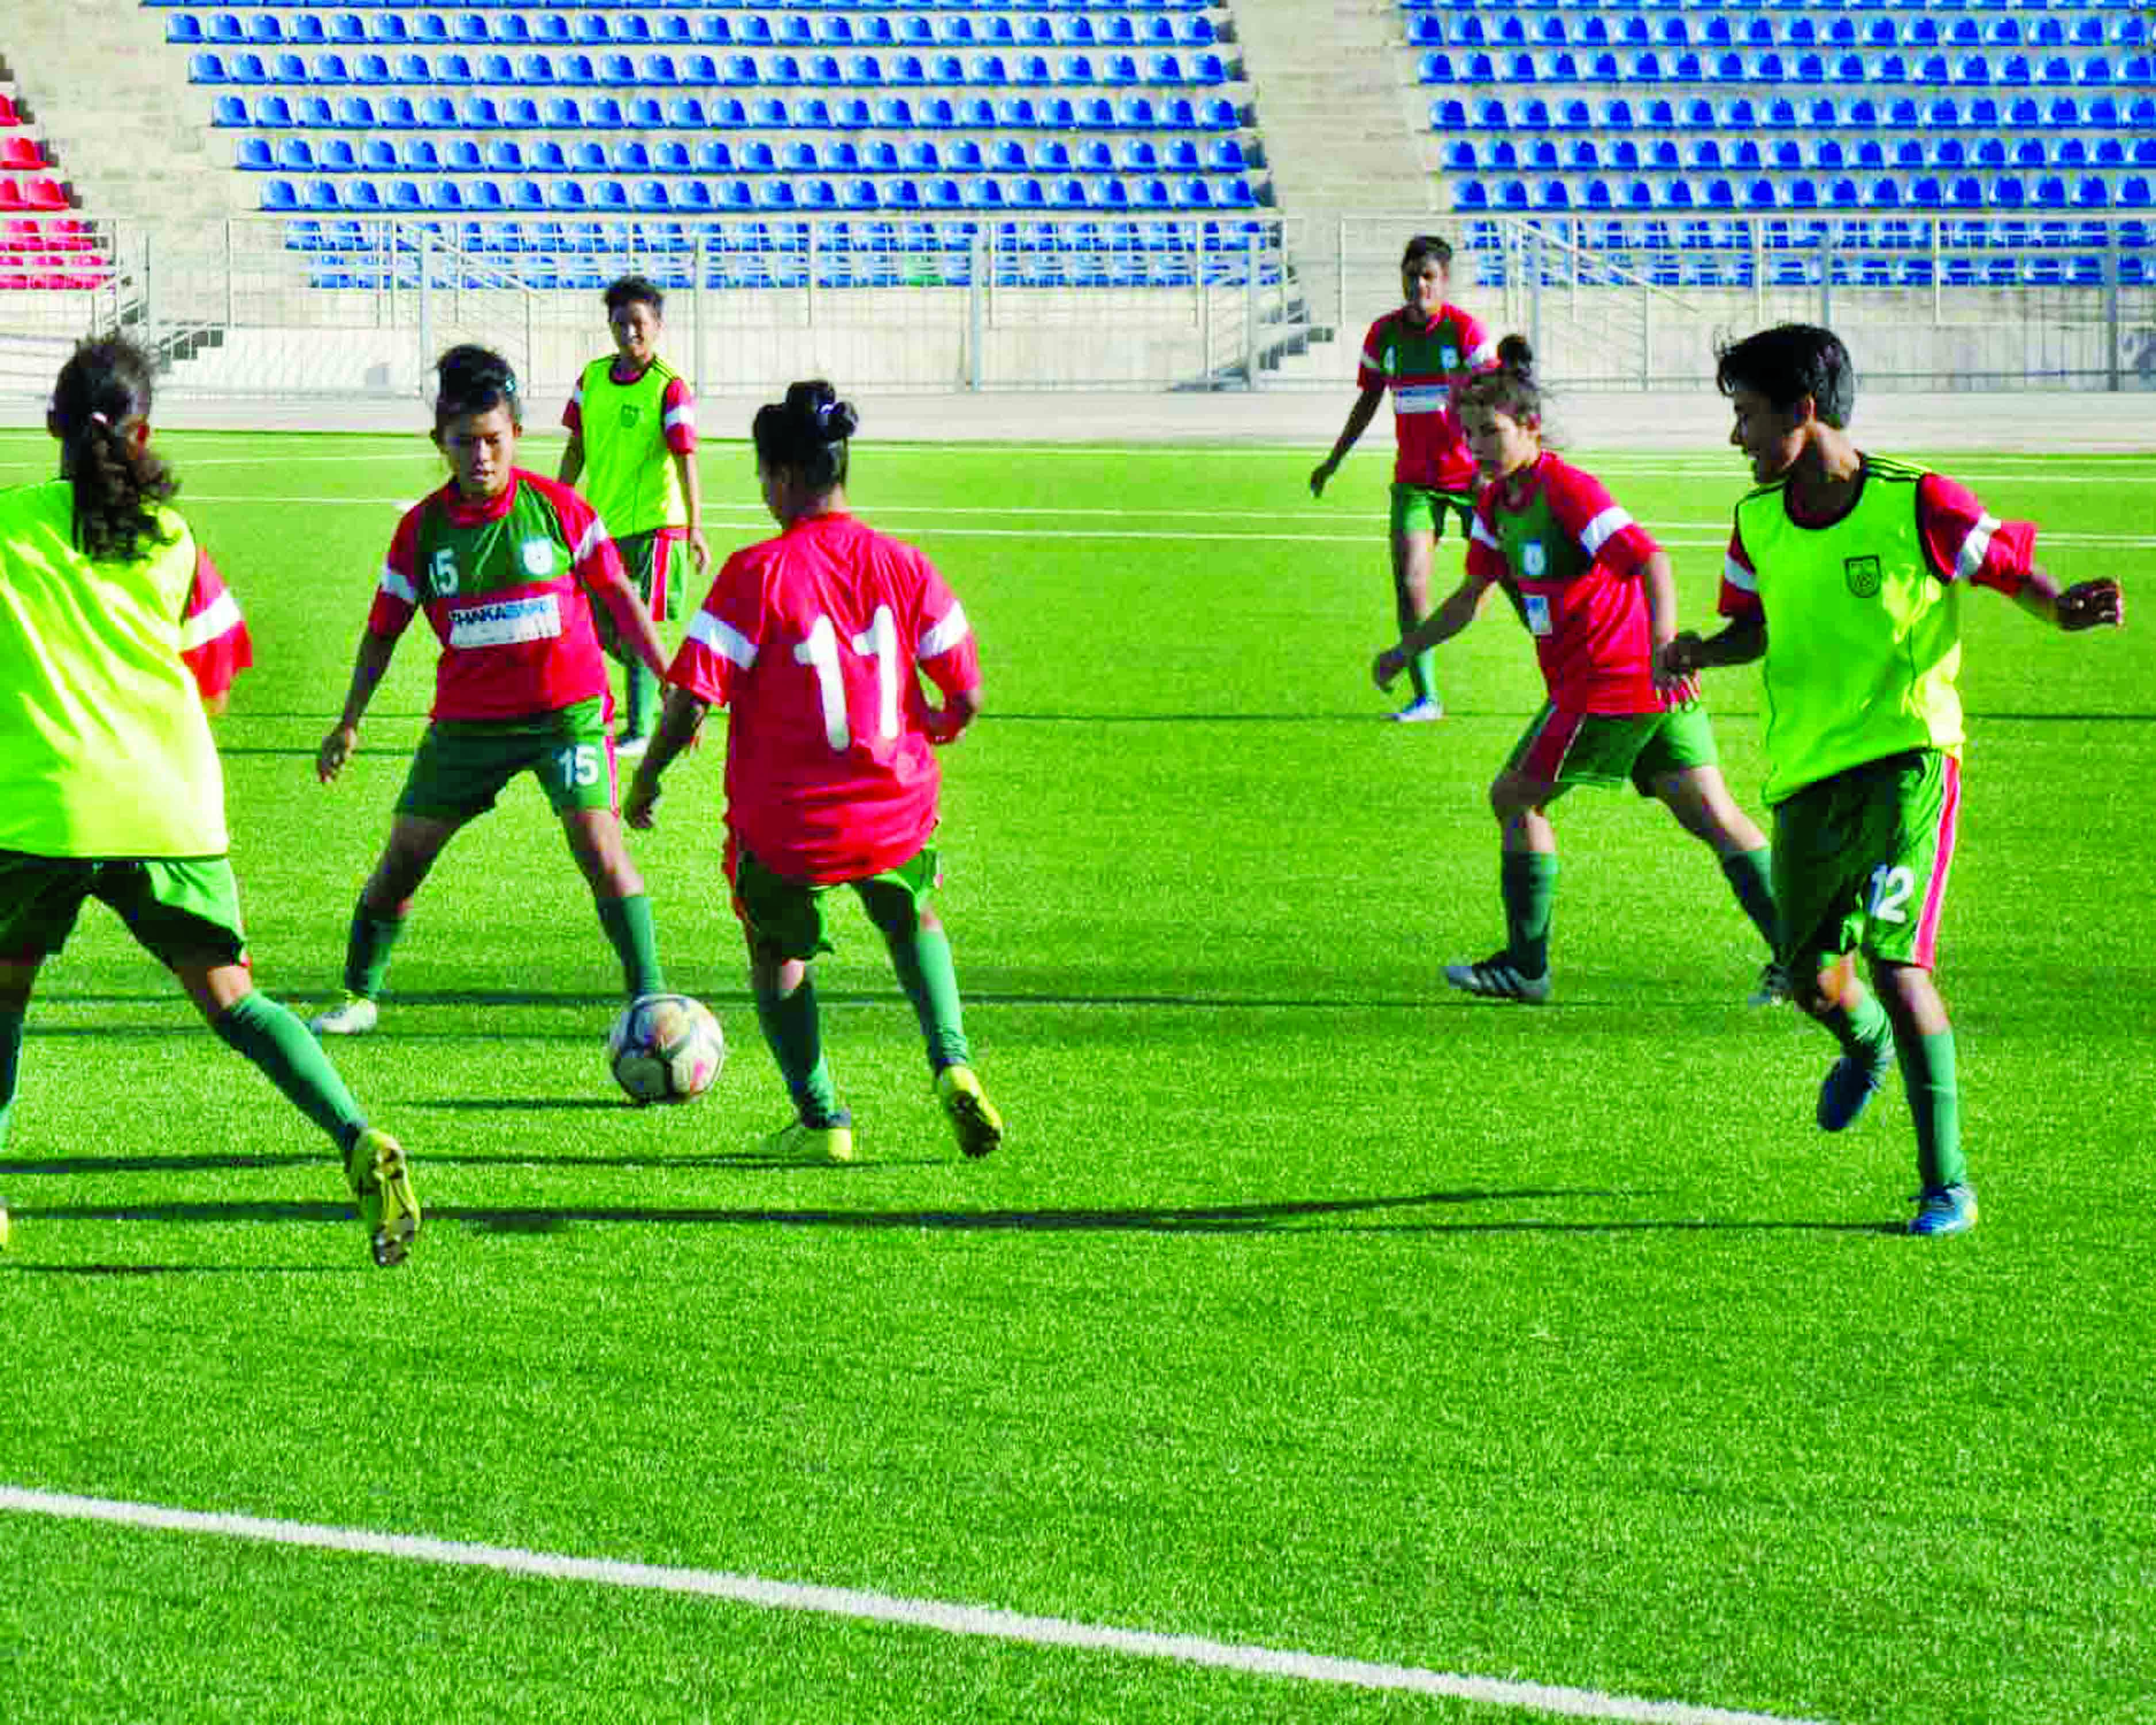 Players of Bangladesh Under-19 National Women's Football team taking part at the practice at Dushanbe in Tajikistan on Tuesday.